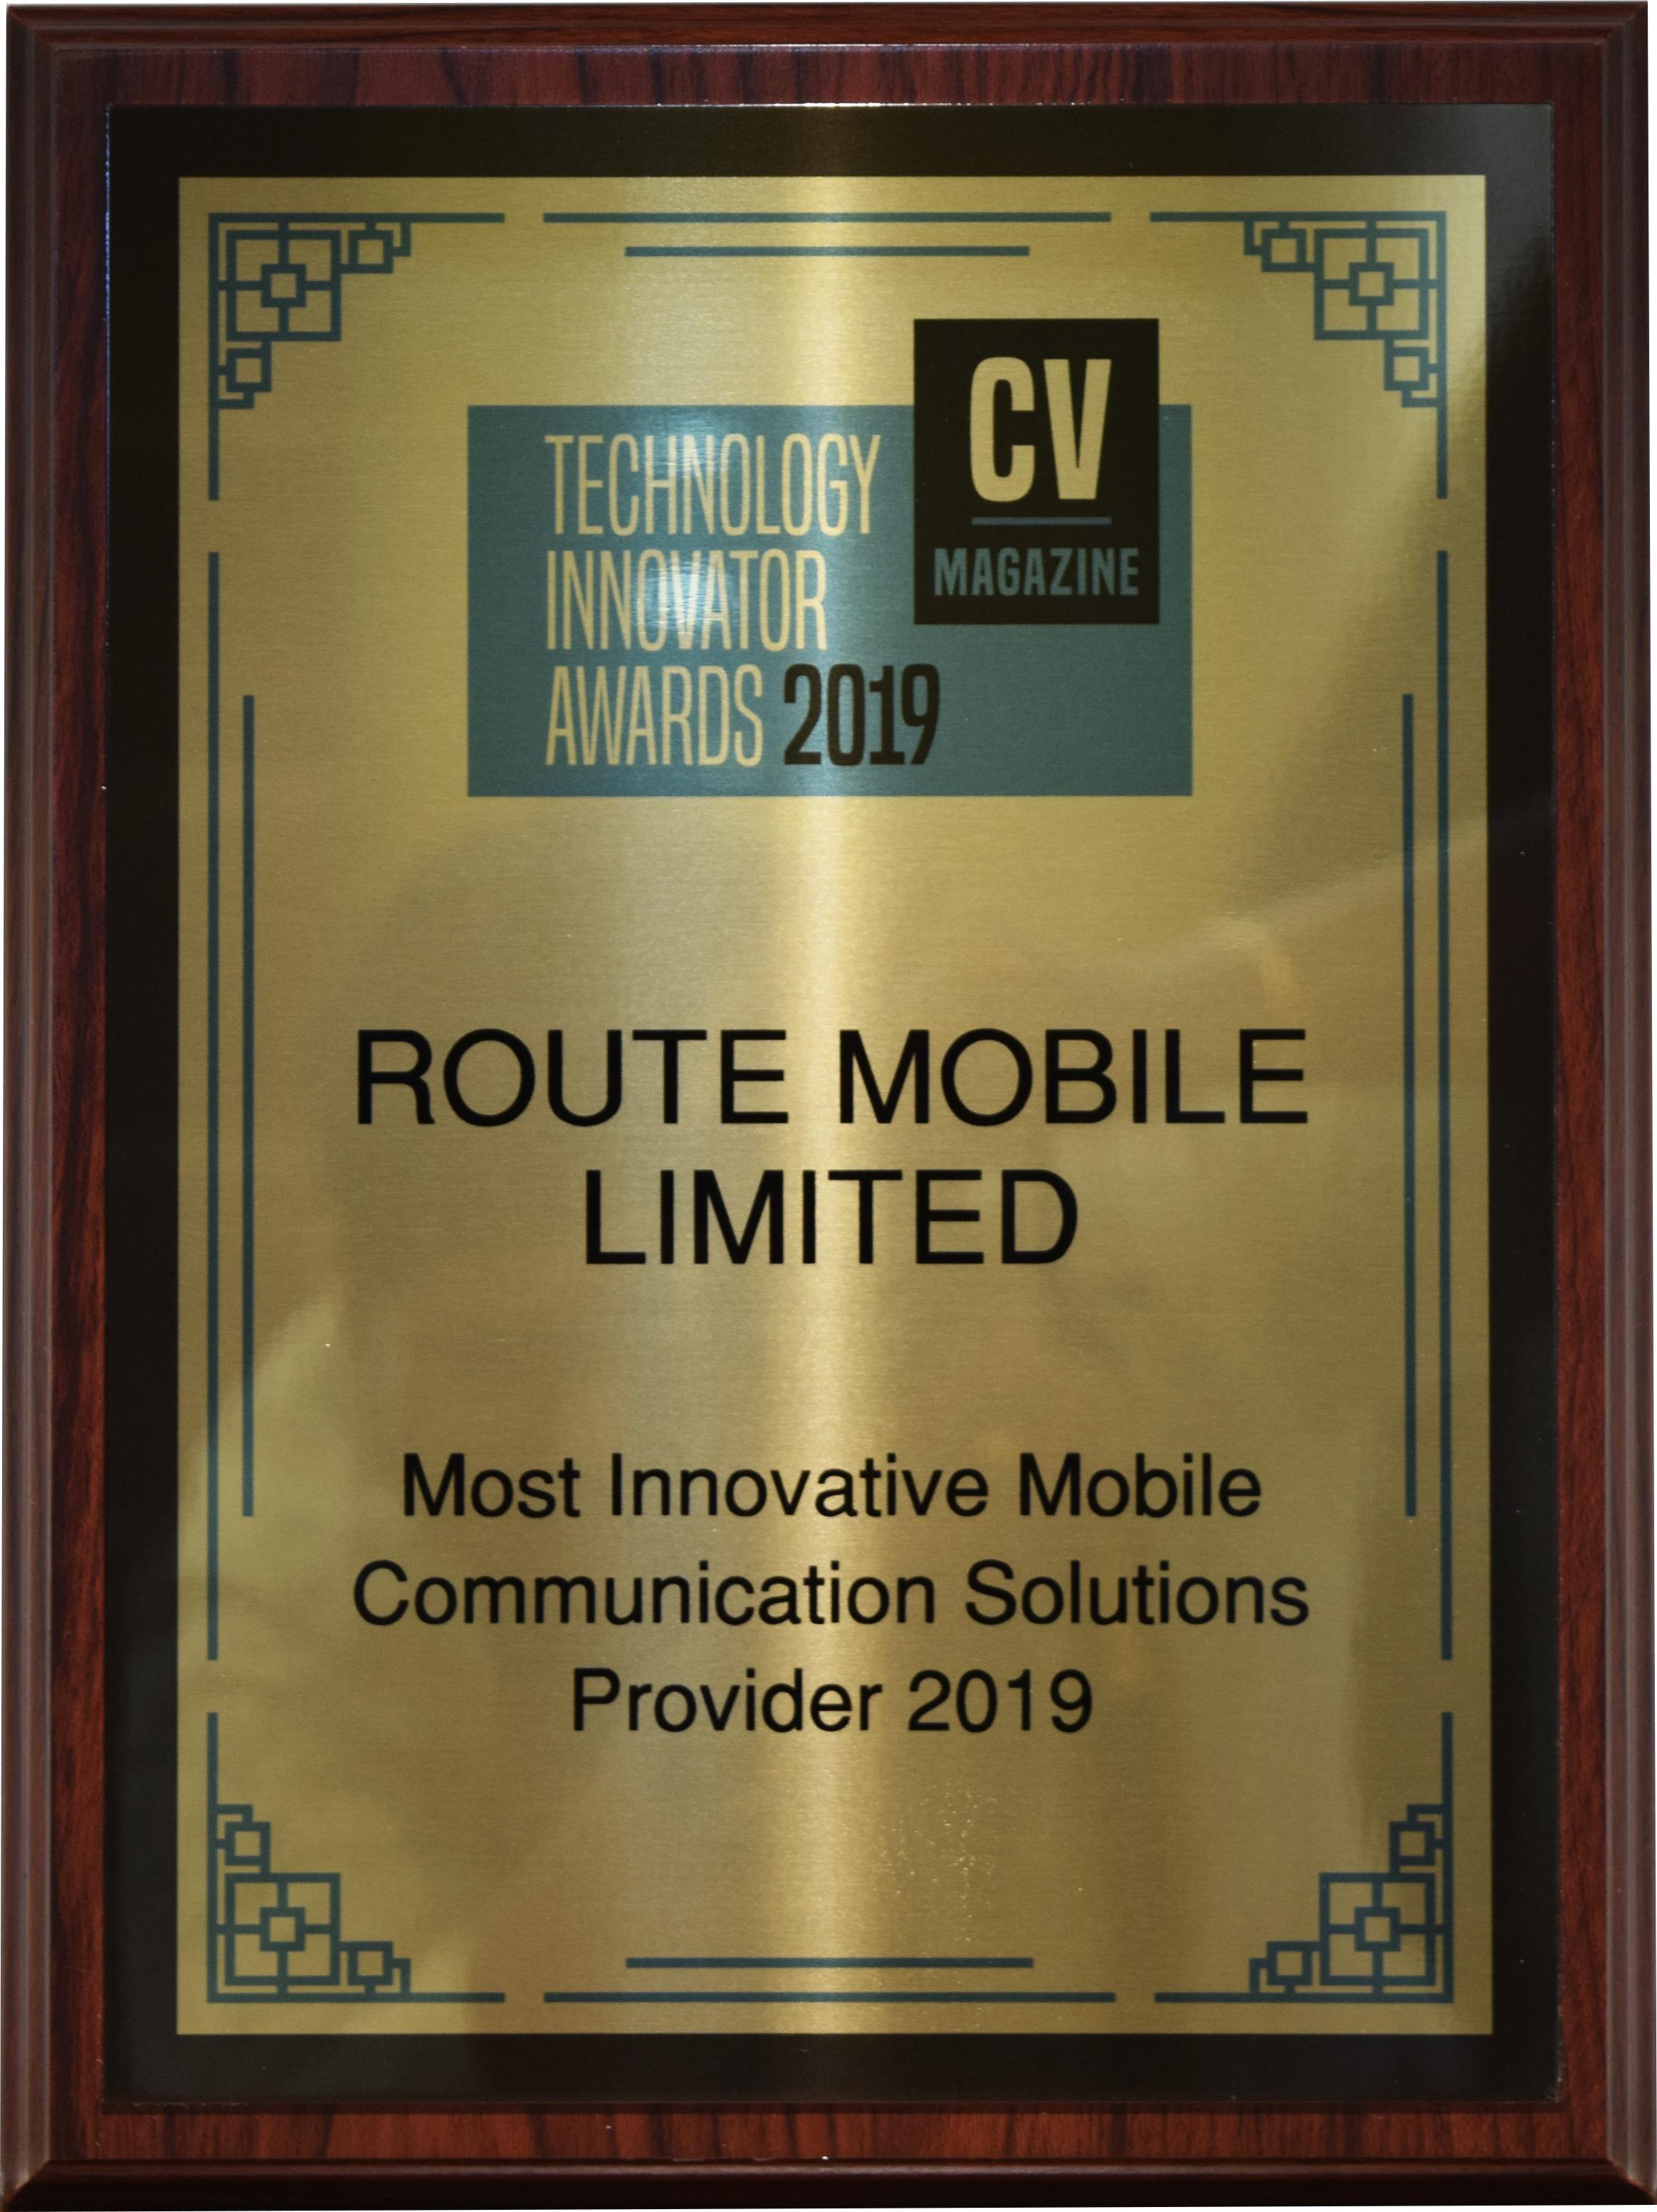 ItVoice | Online IT Magazine India » Route Mobile Limited awarded